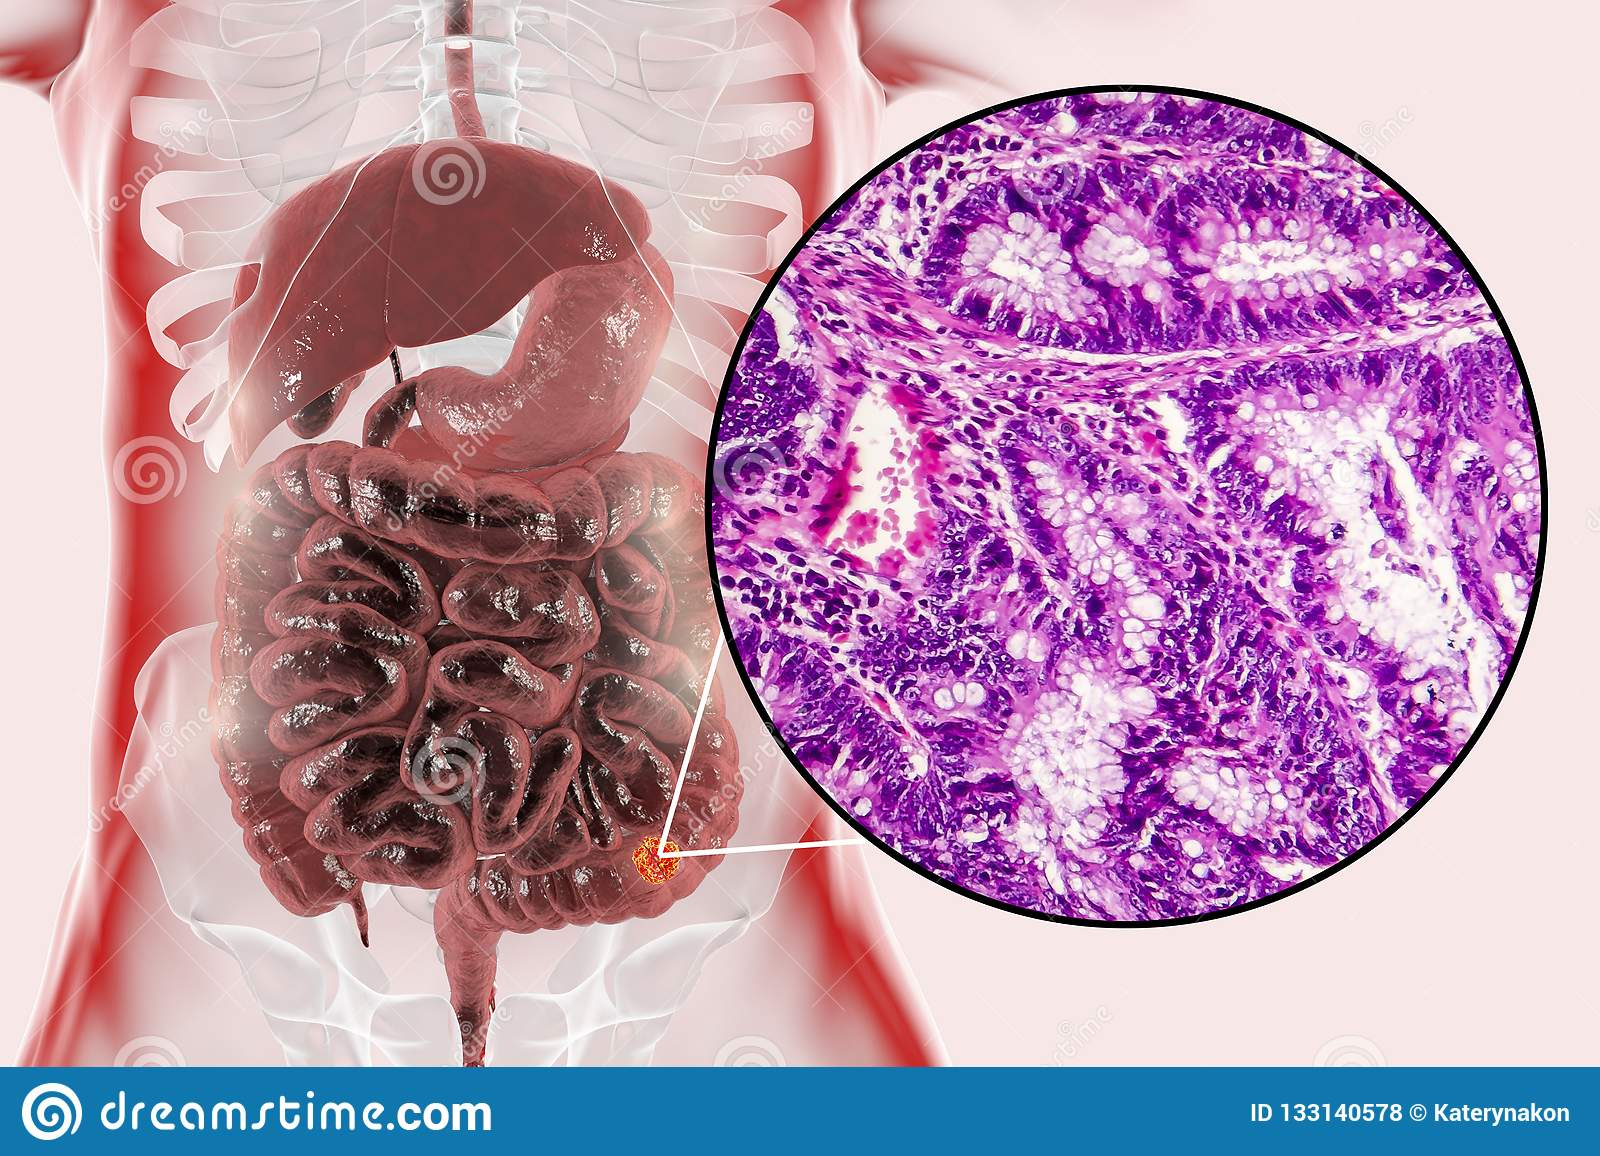 Colon Cancer  Illustration And Photo Under Microscope